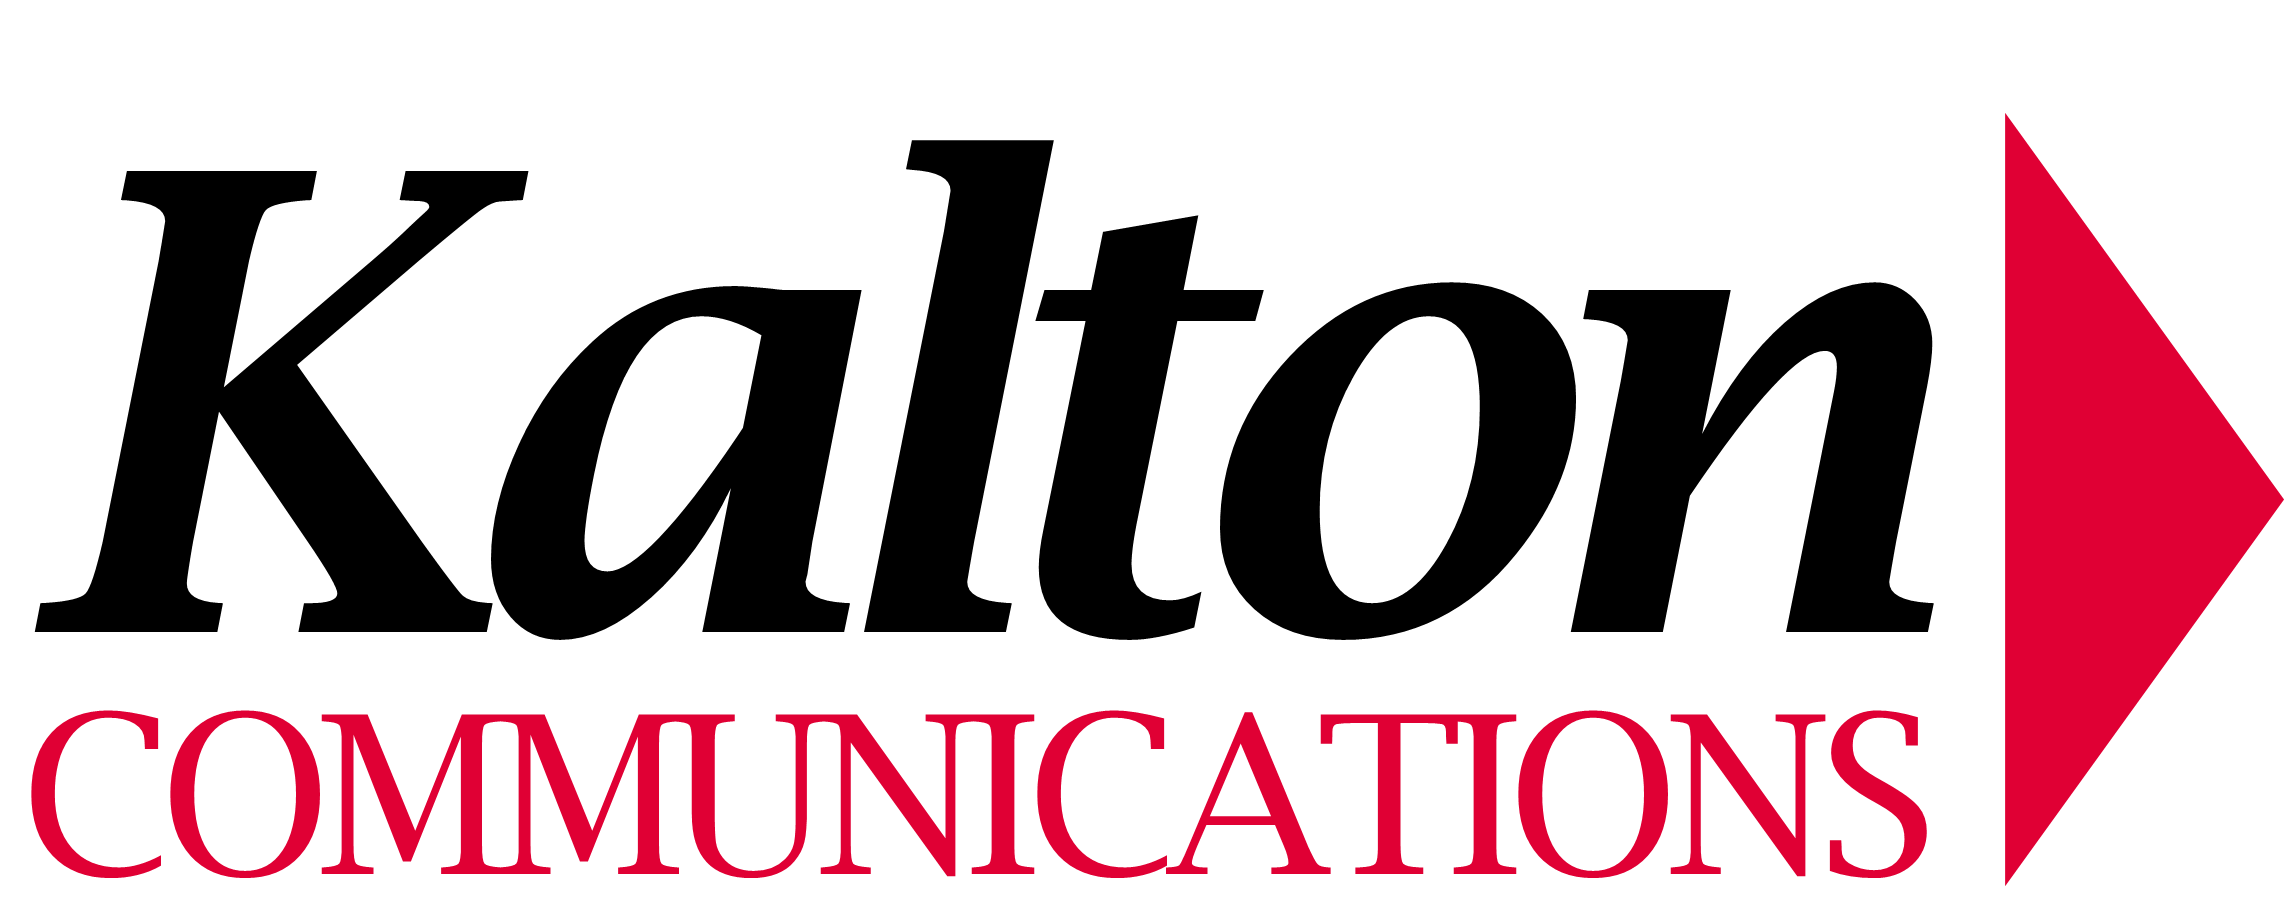 kalton communications